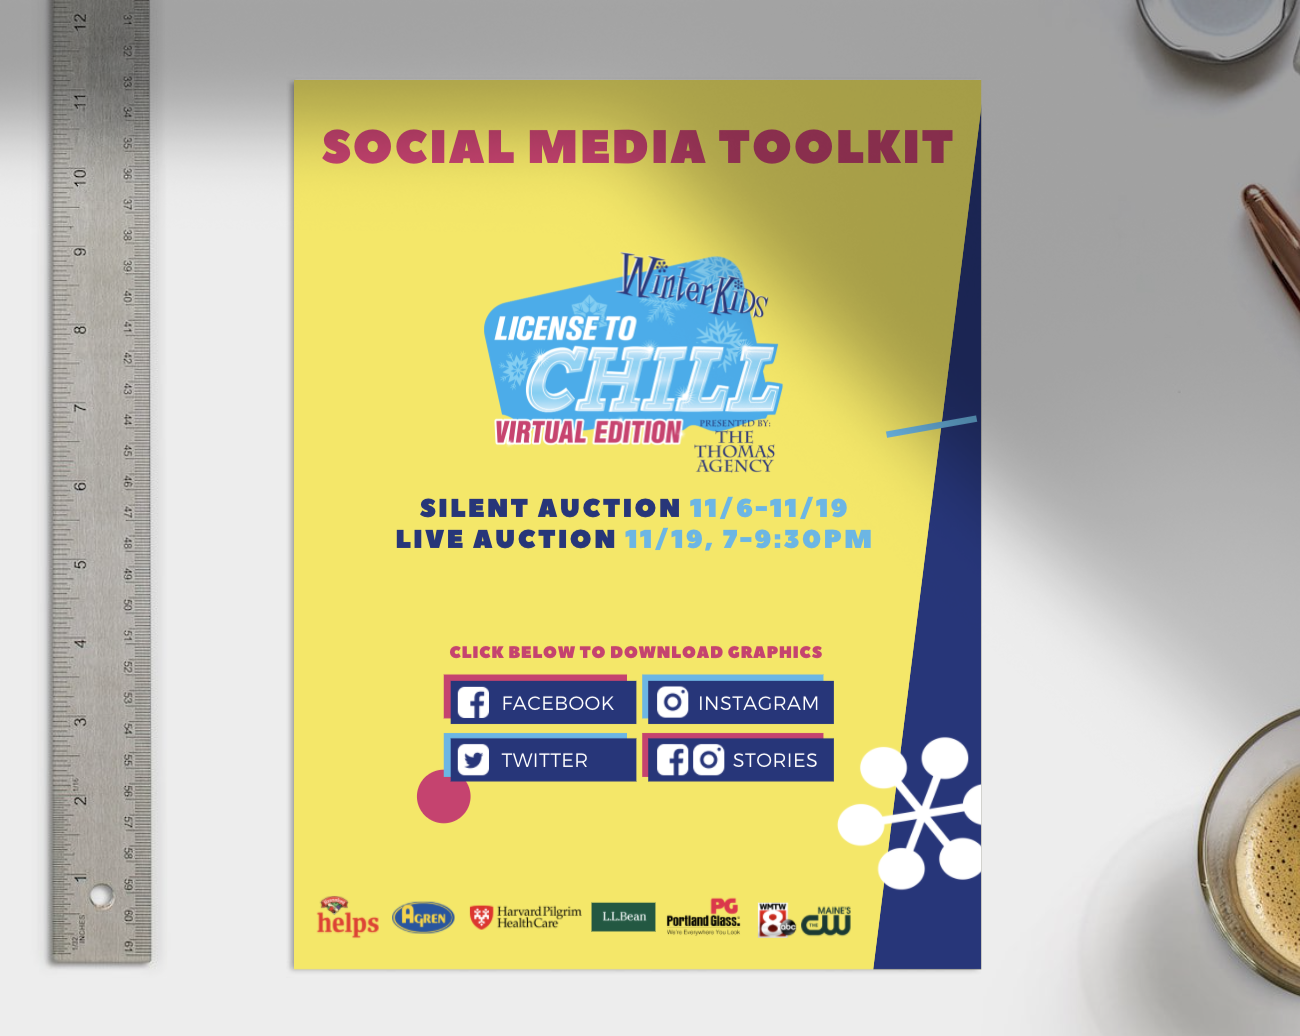 WinterKids License to Chill Social Media Toolkit 2020 v1 1